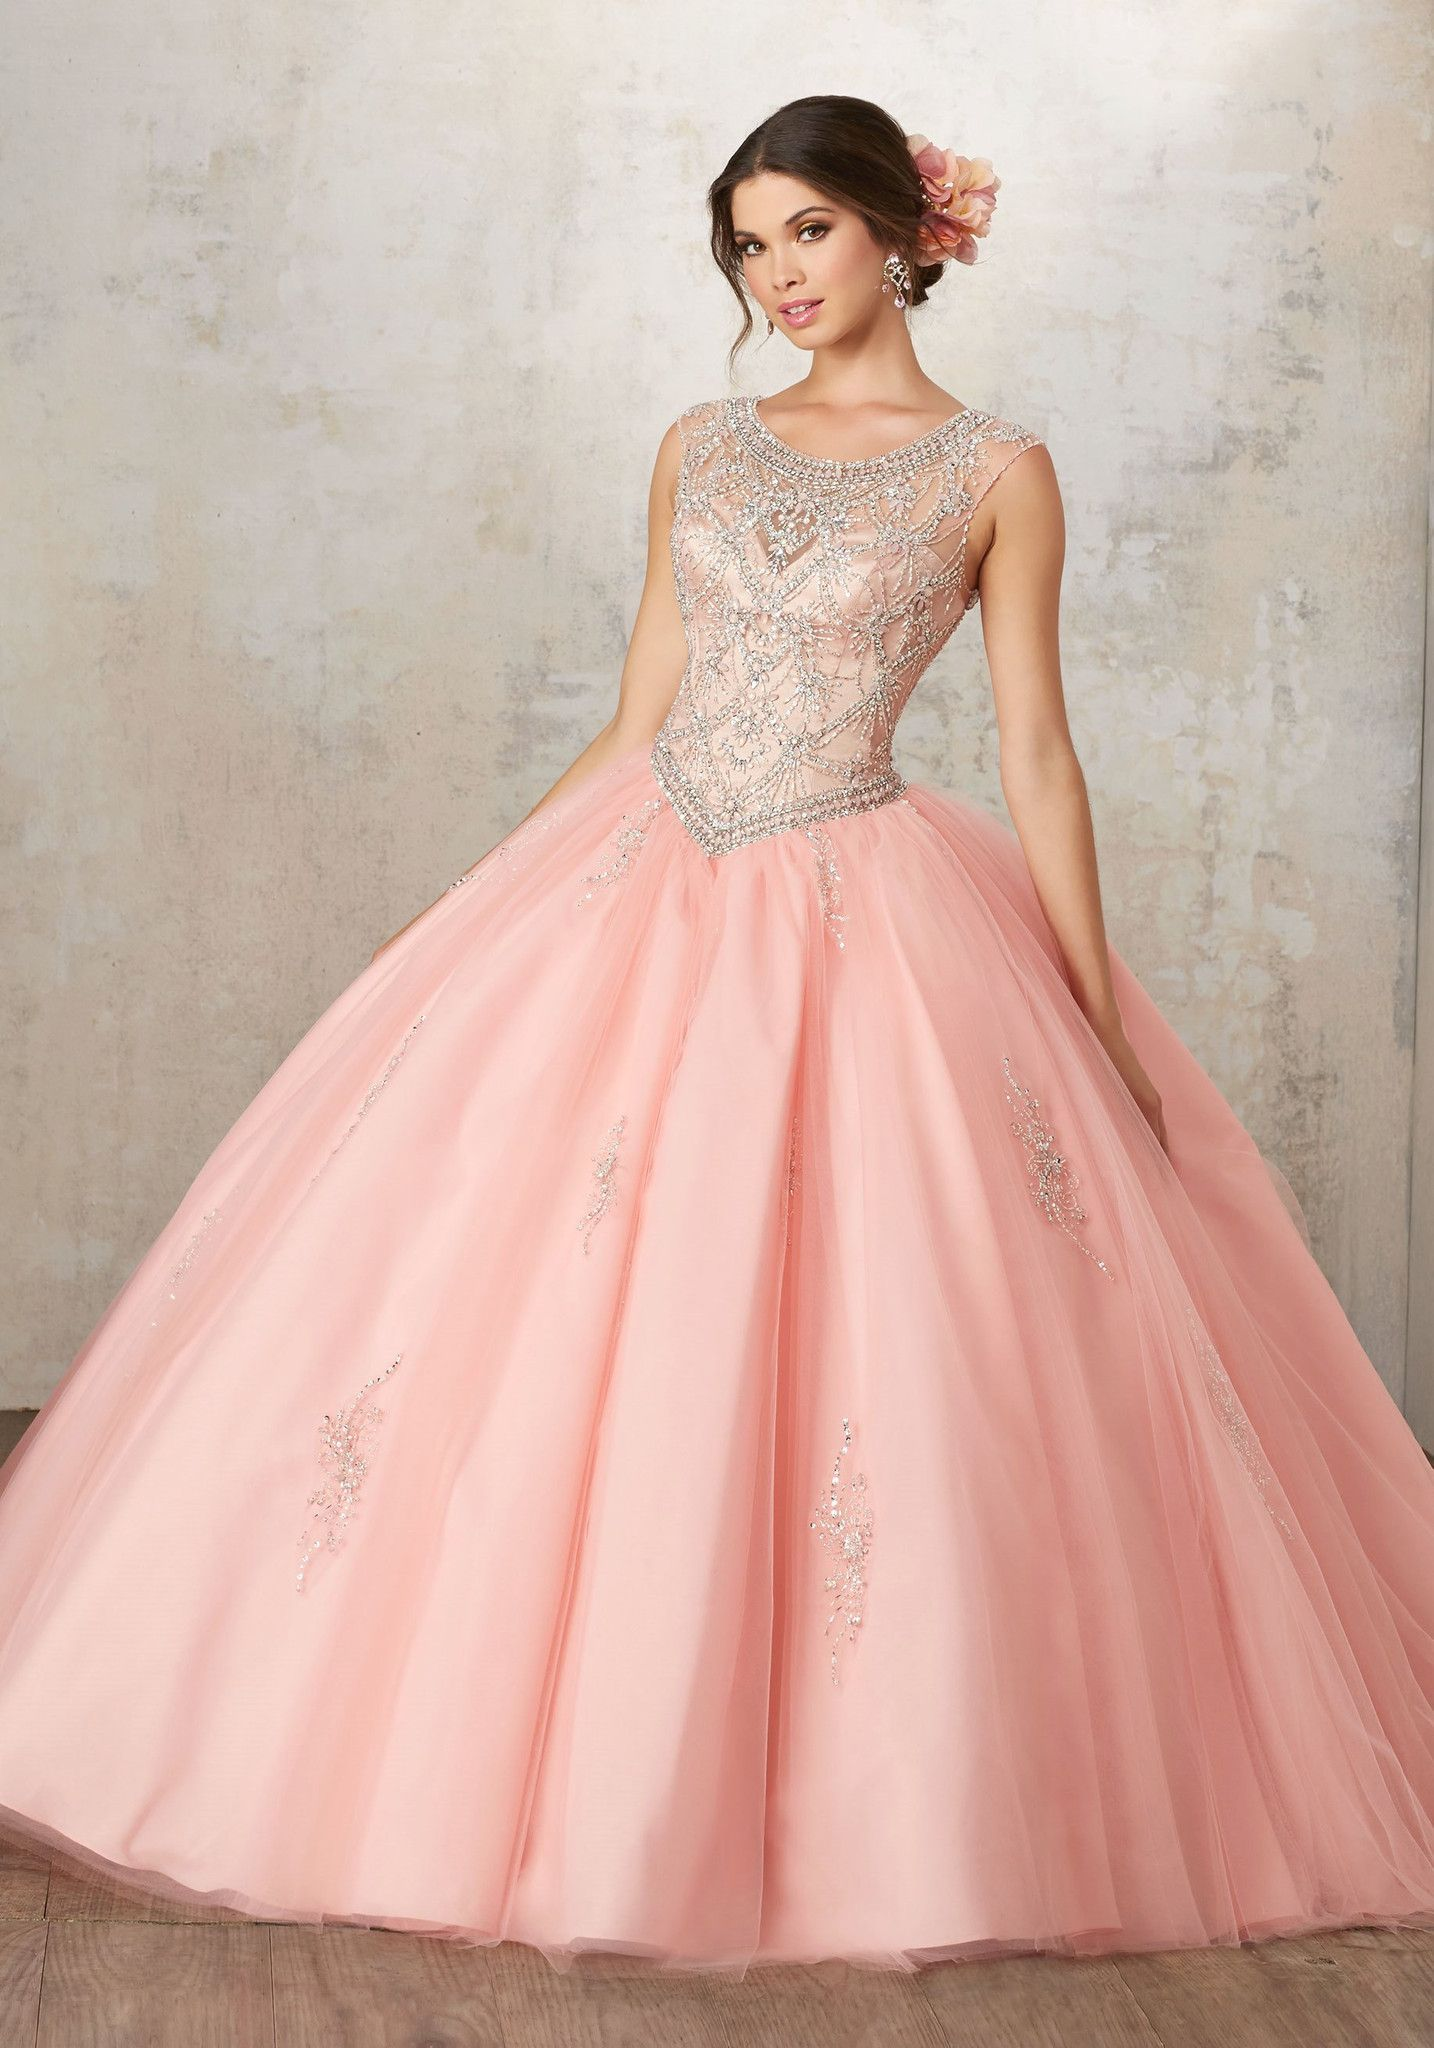 Mori Lee Quinceanera Dress 89129 | 15 años, Años y vestidos XV